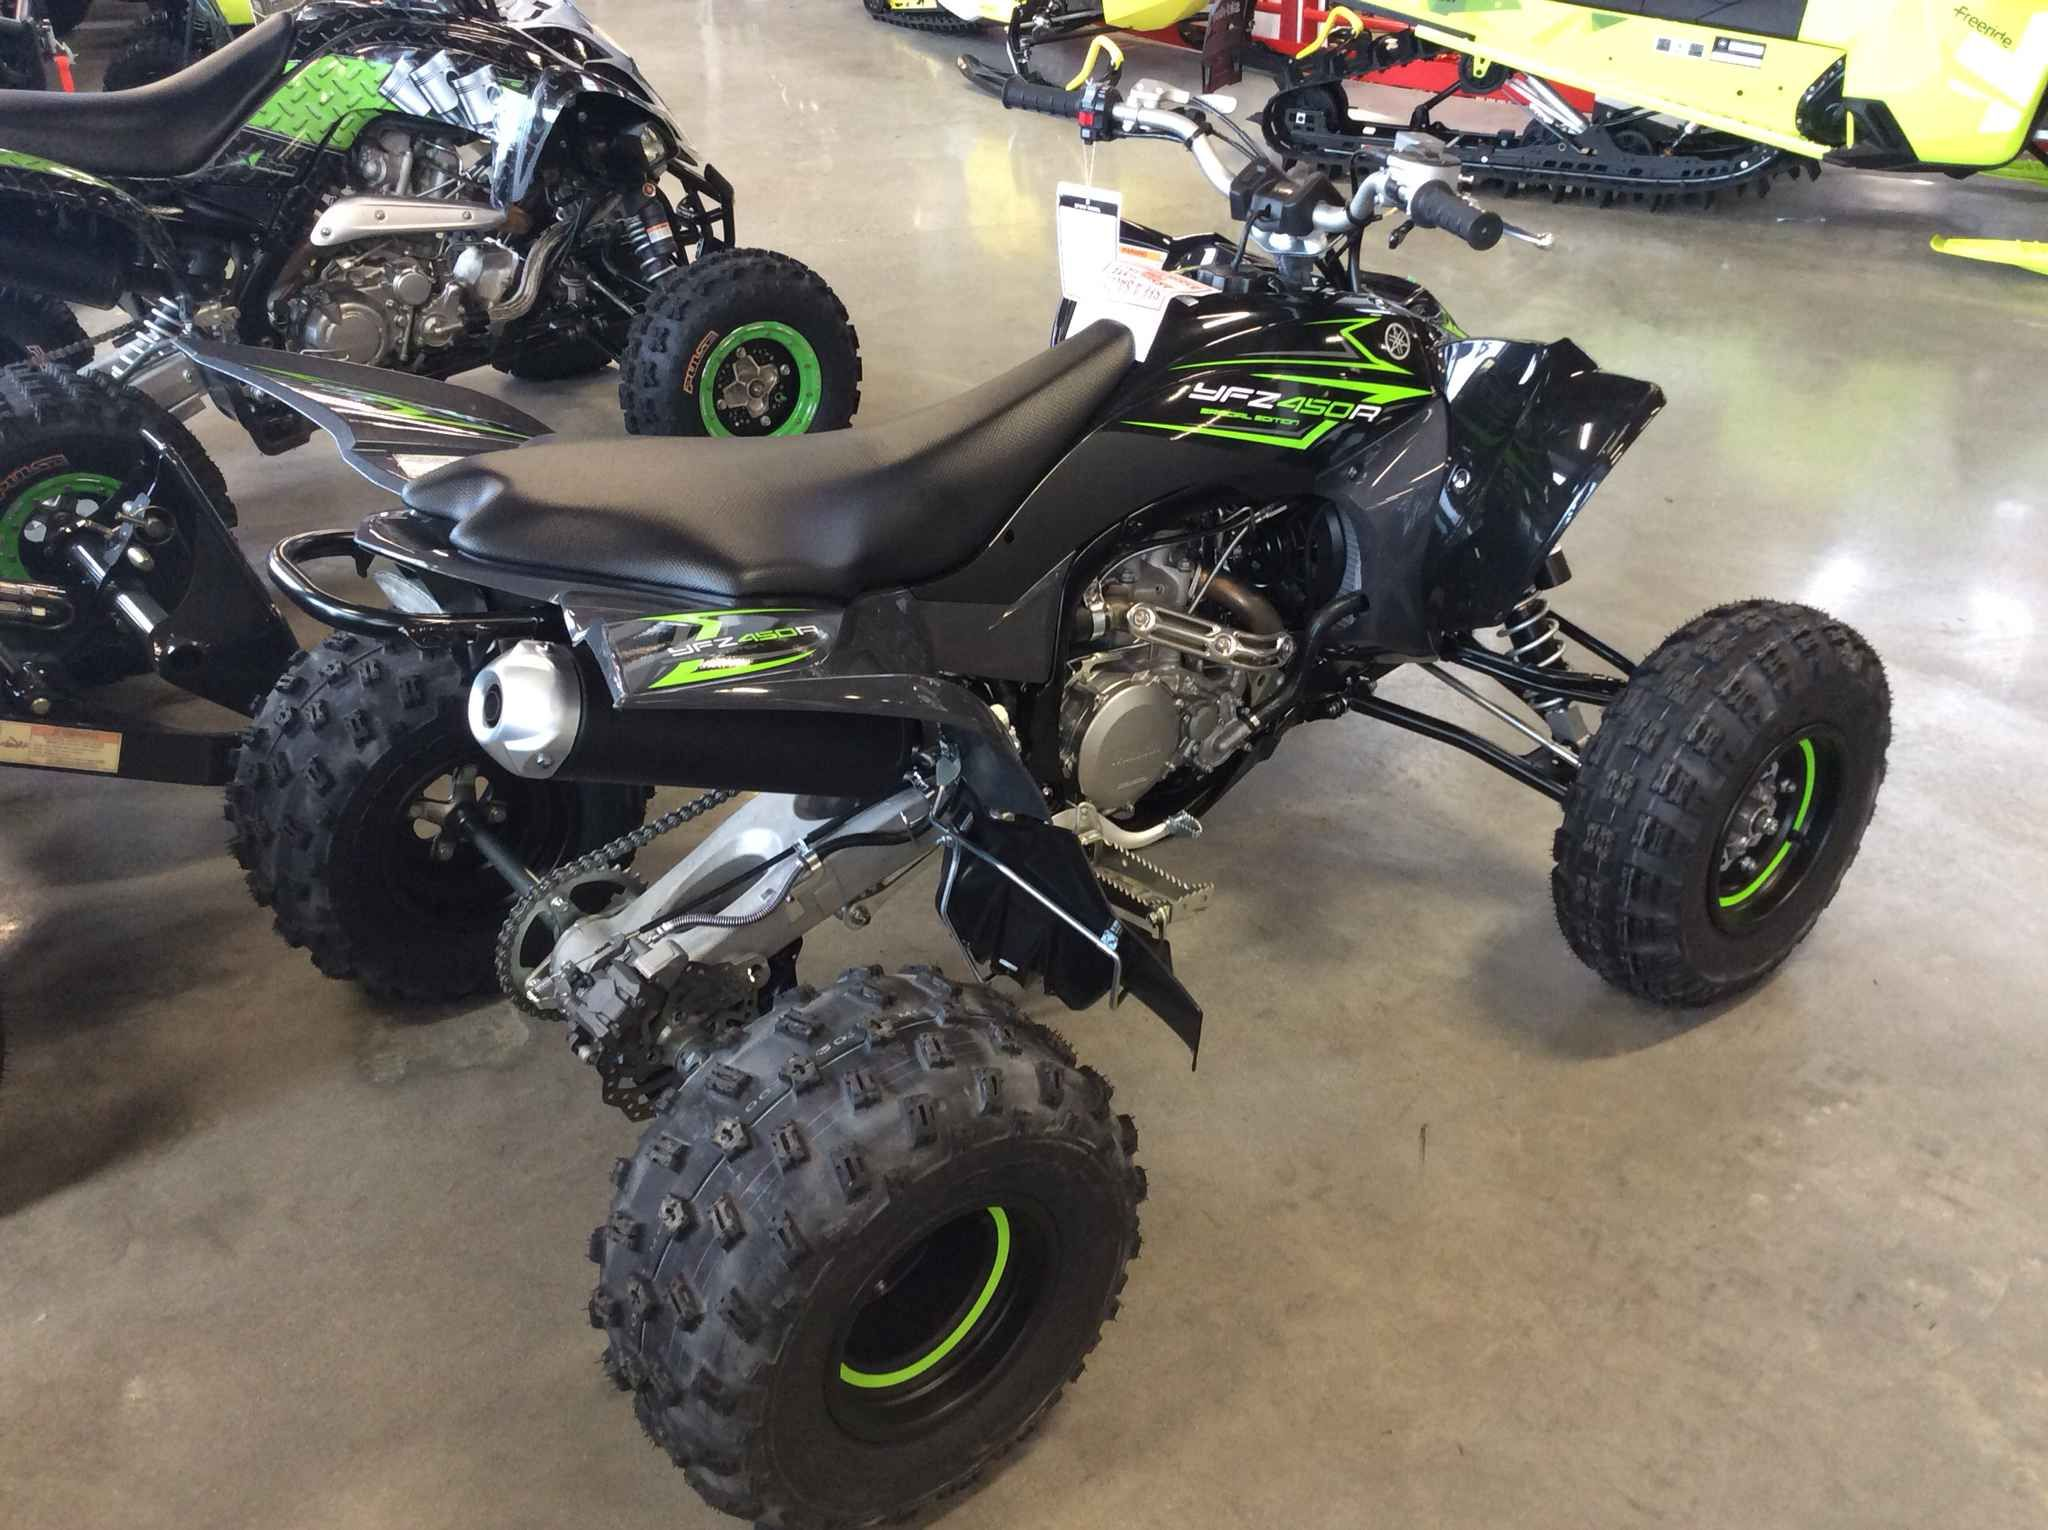 New 2017 Yamaha YFZ450R SPECIAL EDI ATVs For Sale in New